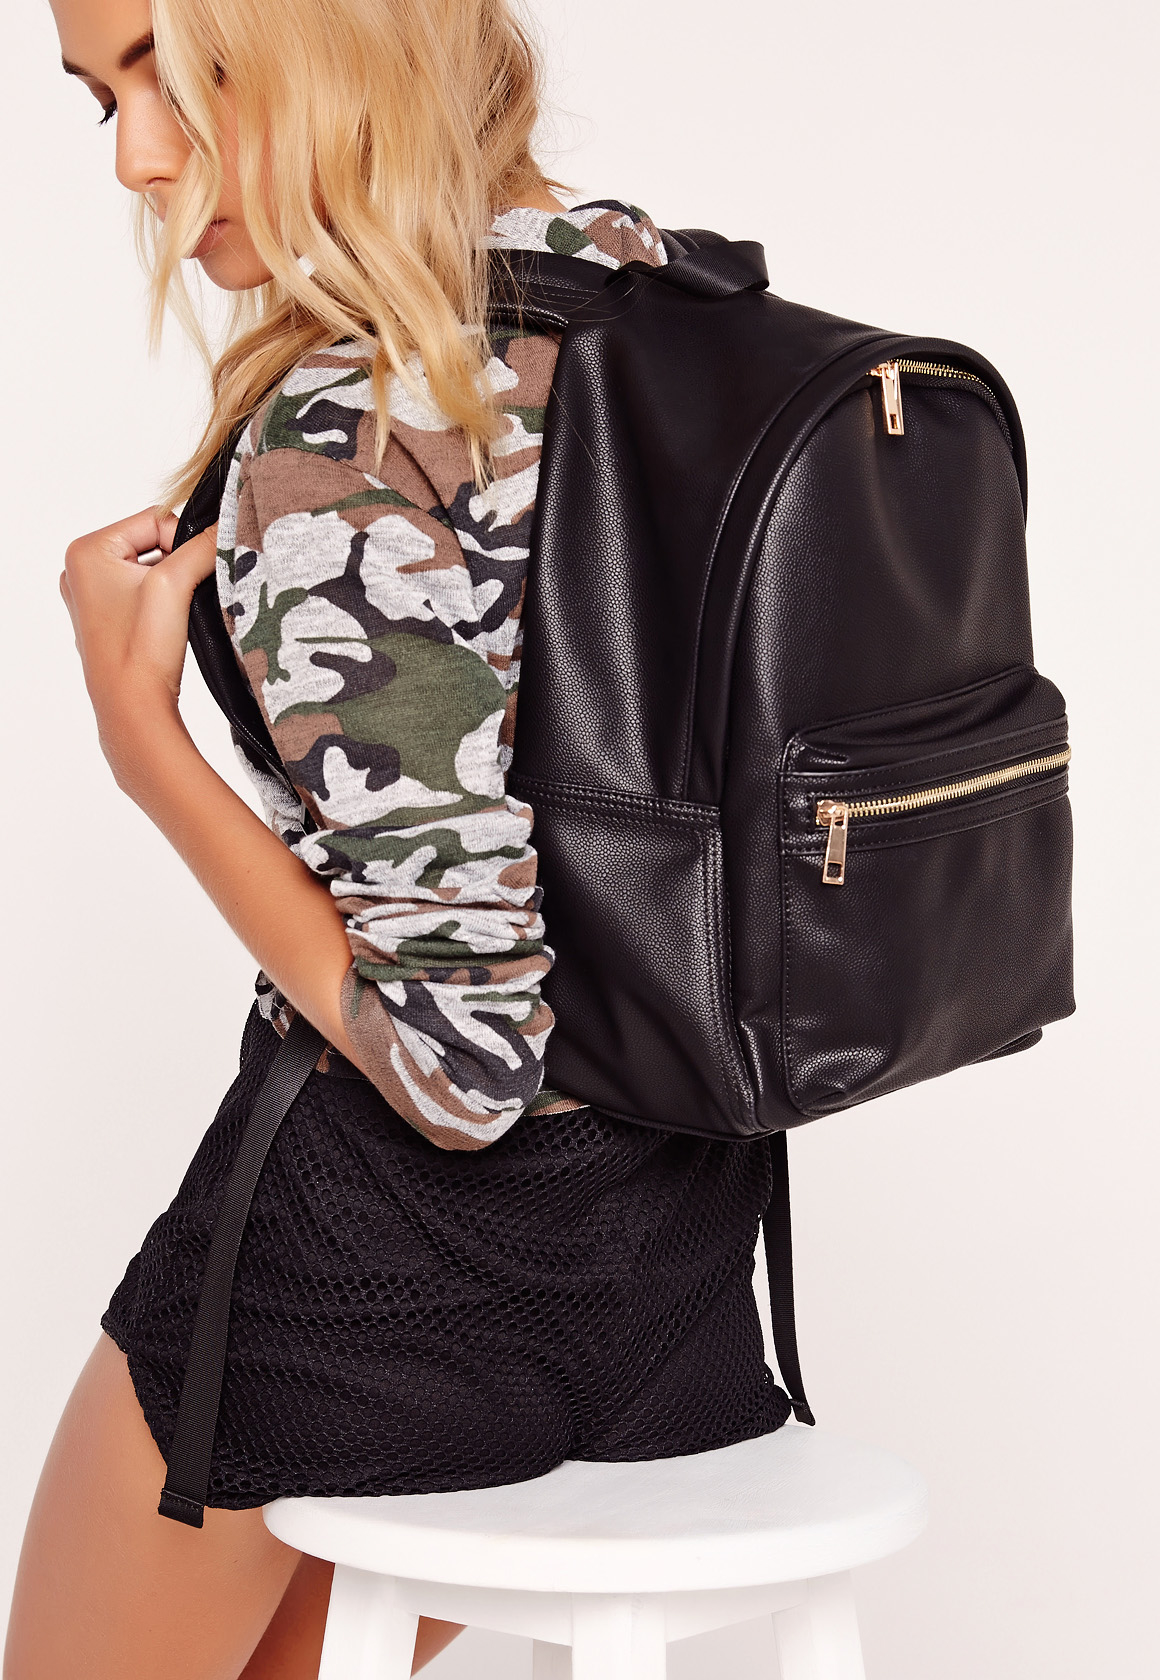 missguided sports luxe backpack black in black lyst. Black Bedroom Furniture Sets. Home Design Ideas